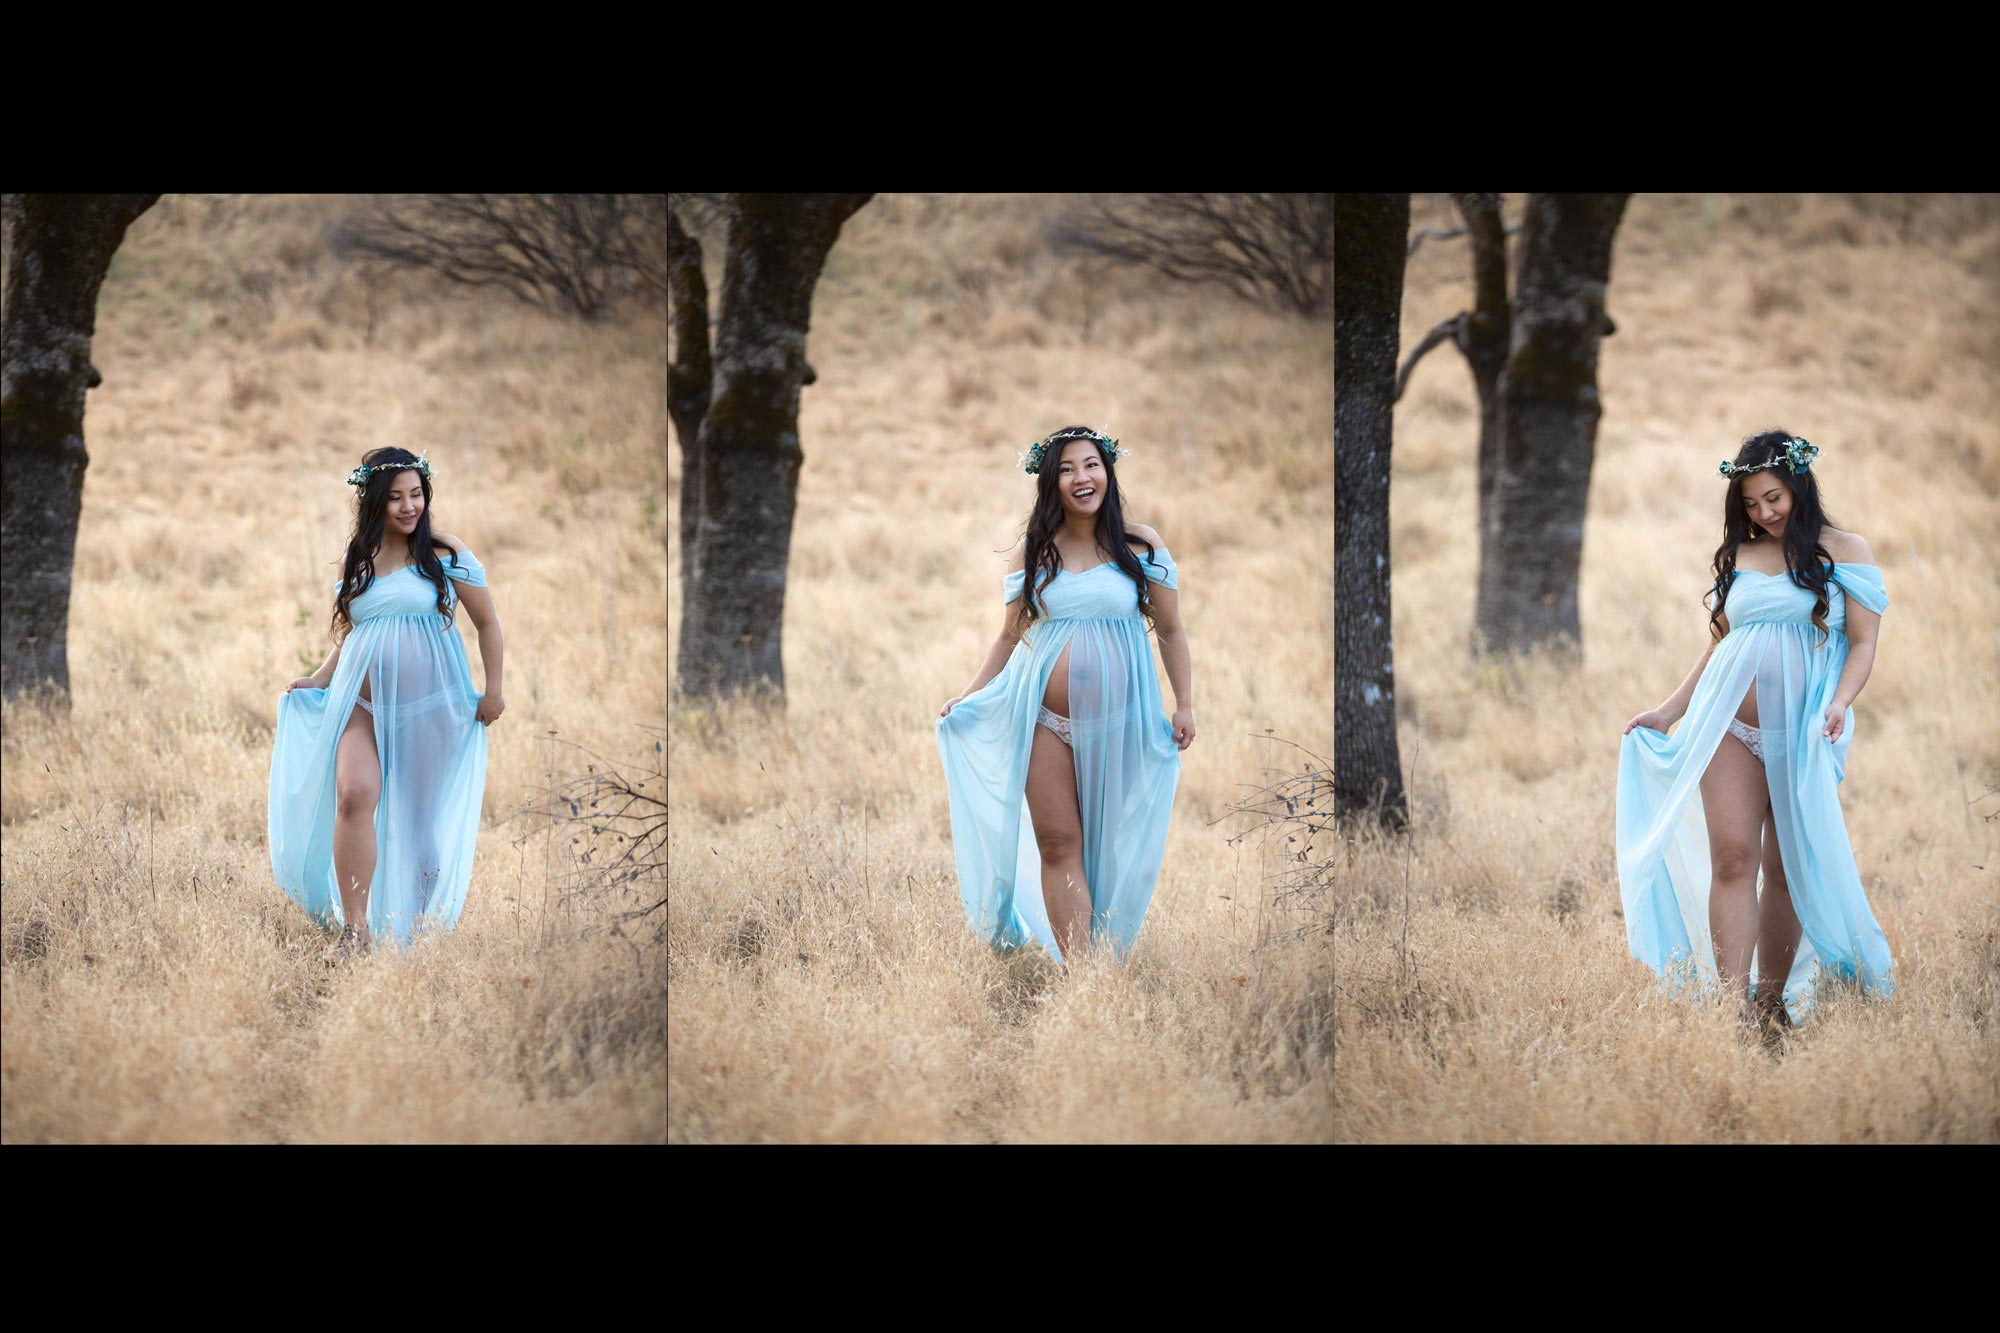 Maternity portraits of woman in blue dress walking in a sonoma California field